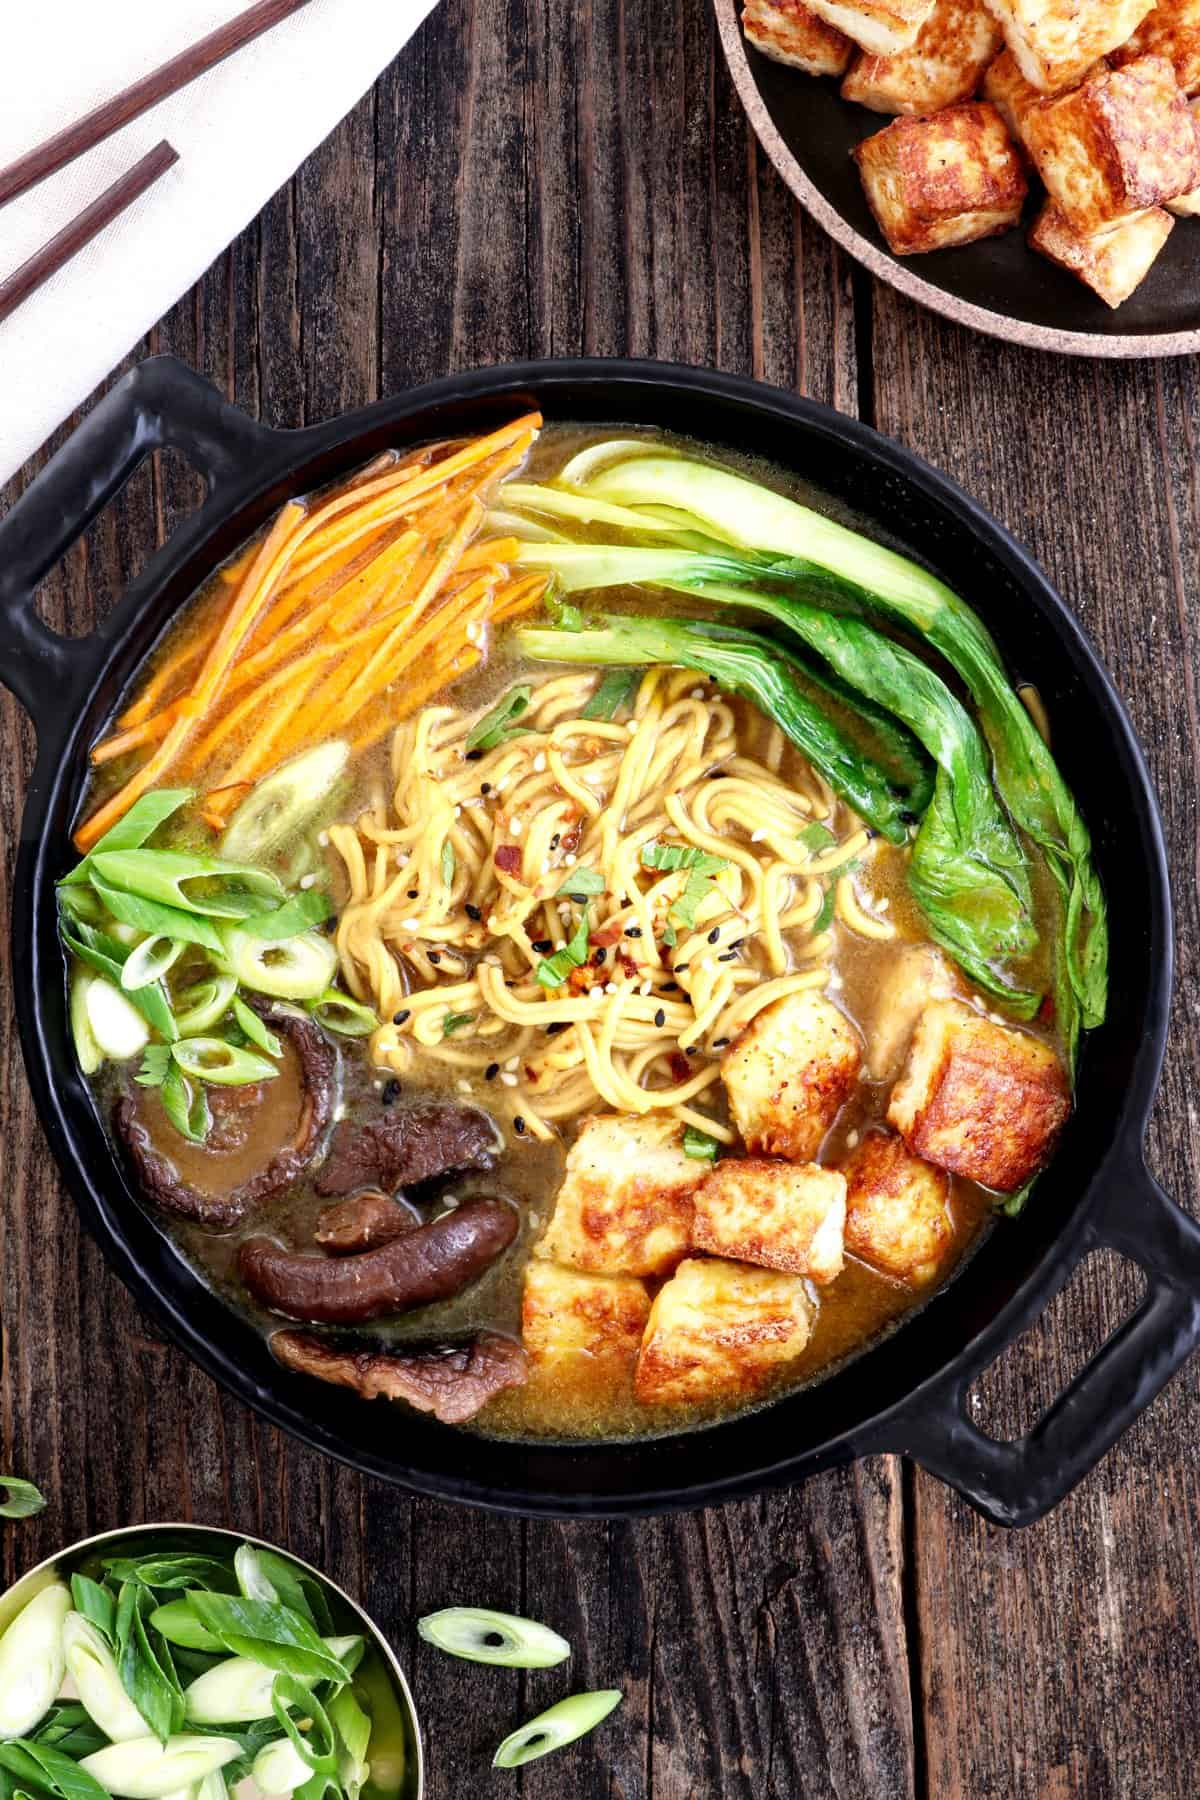 Overhead view of vegan ramen in a black bowl. Tofu and green onions on the side.